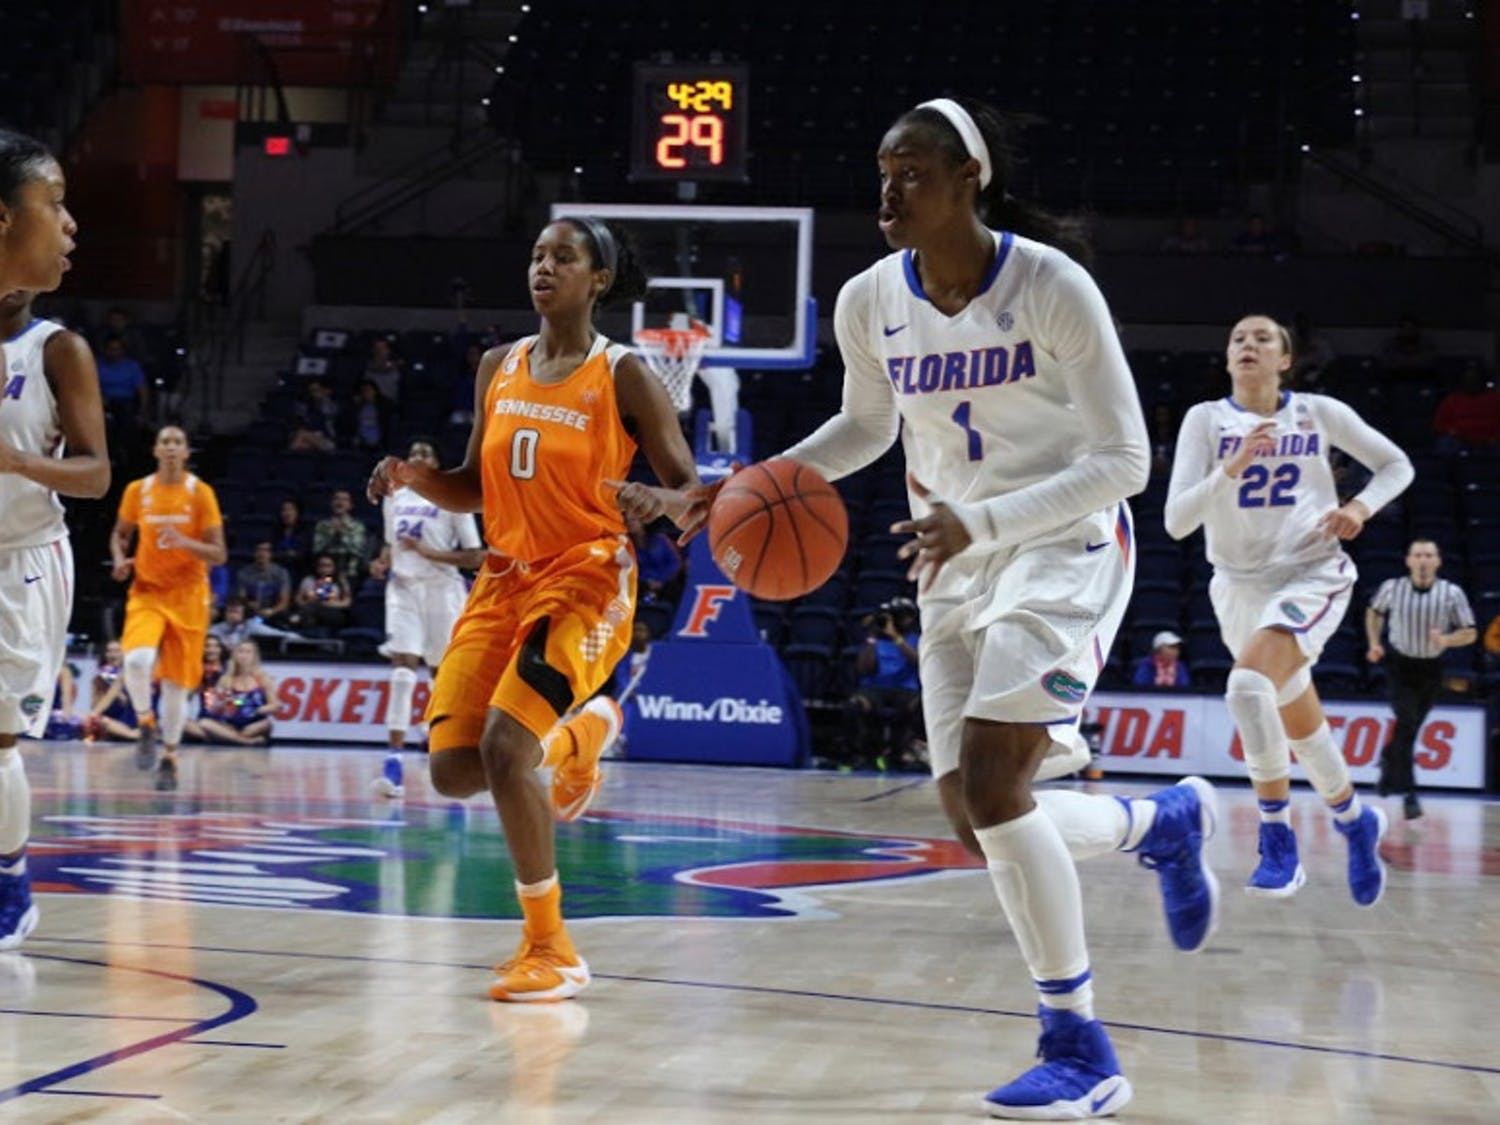 UF forward Ronni Williams dribbles the ball during Florida's 84-75 loss to Tennessee on Jan. 26, 2017, in the O'Connell Center.